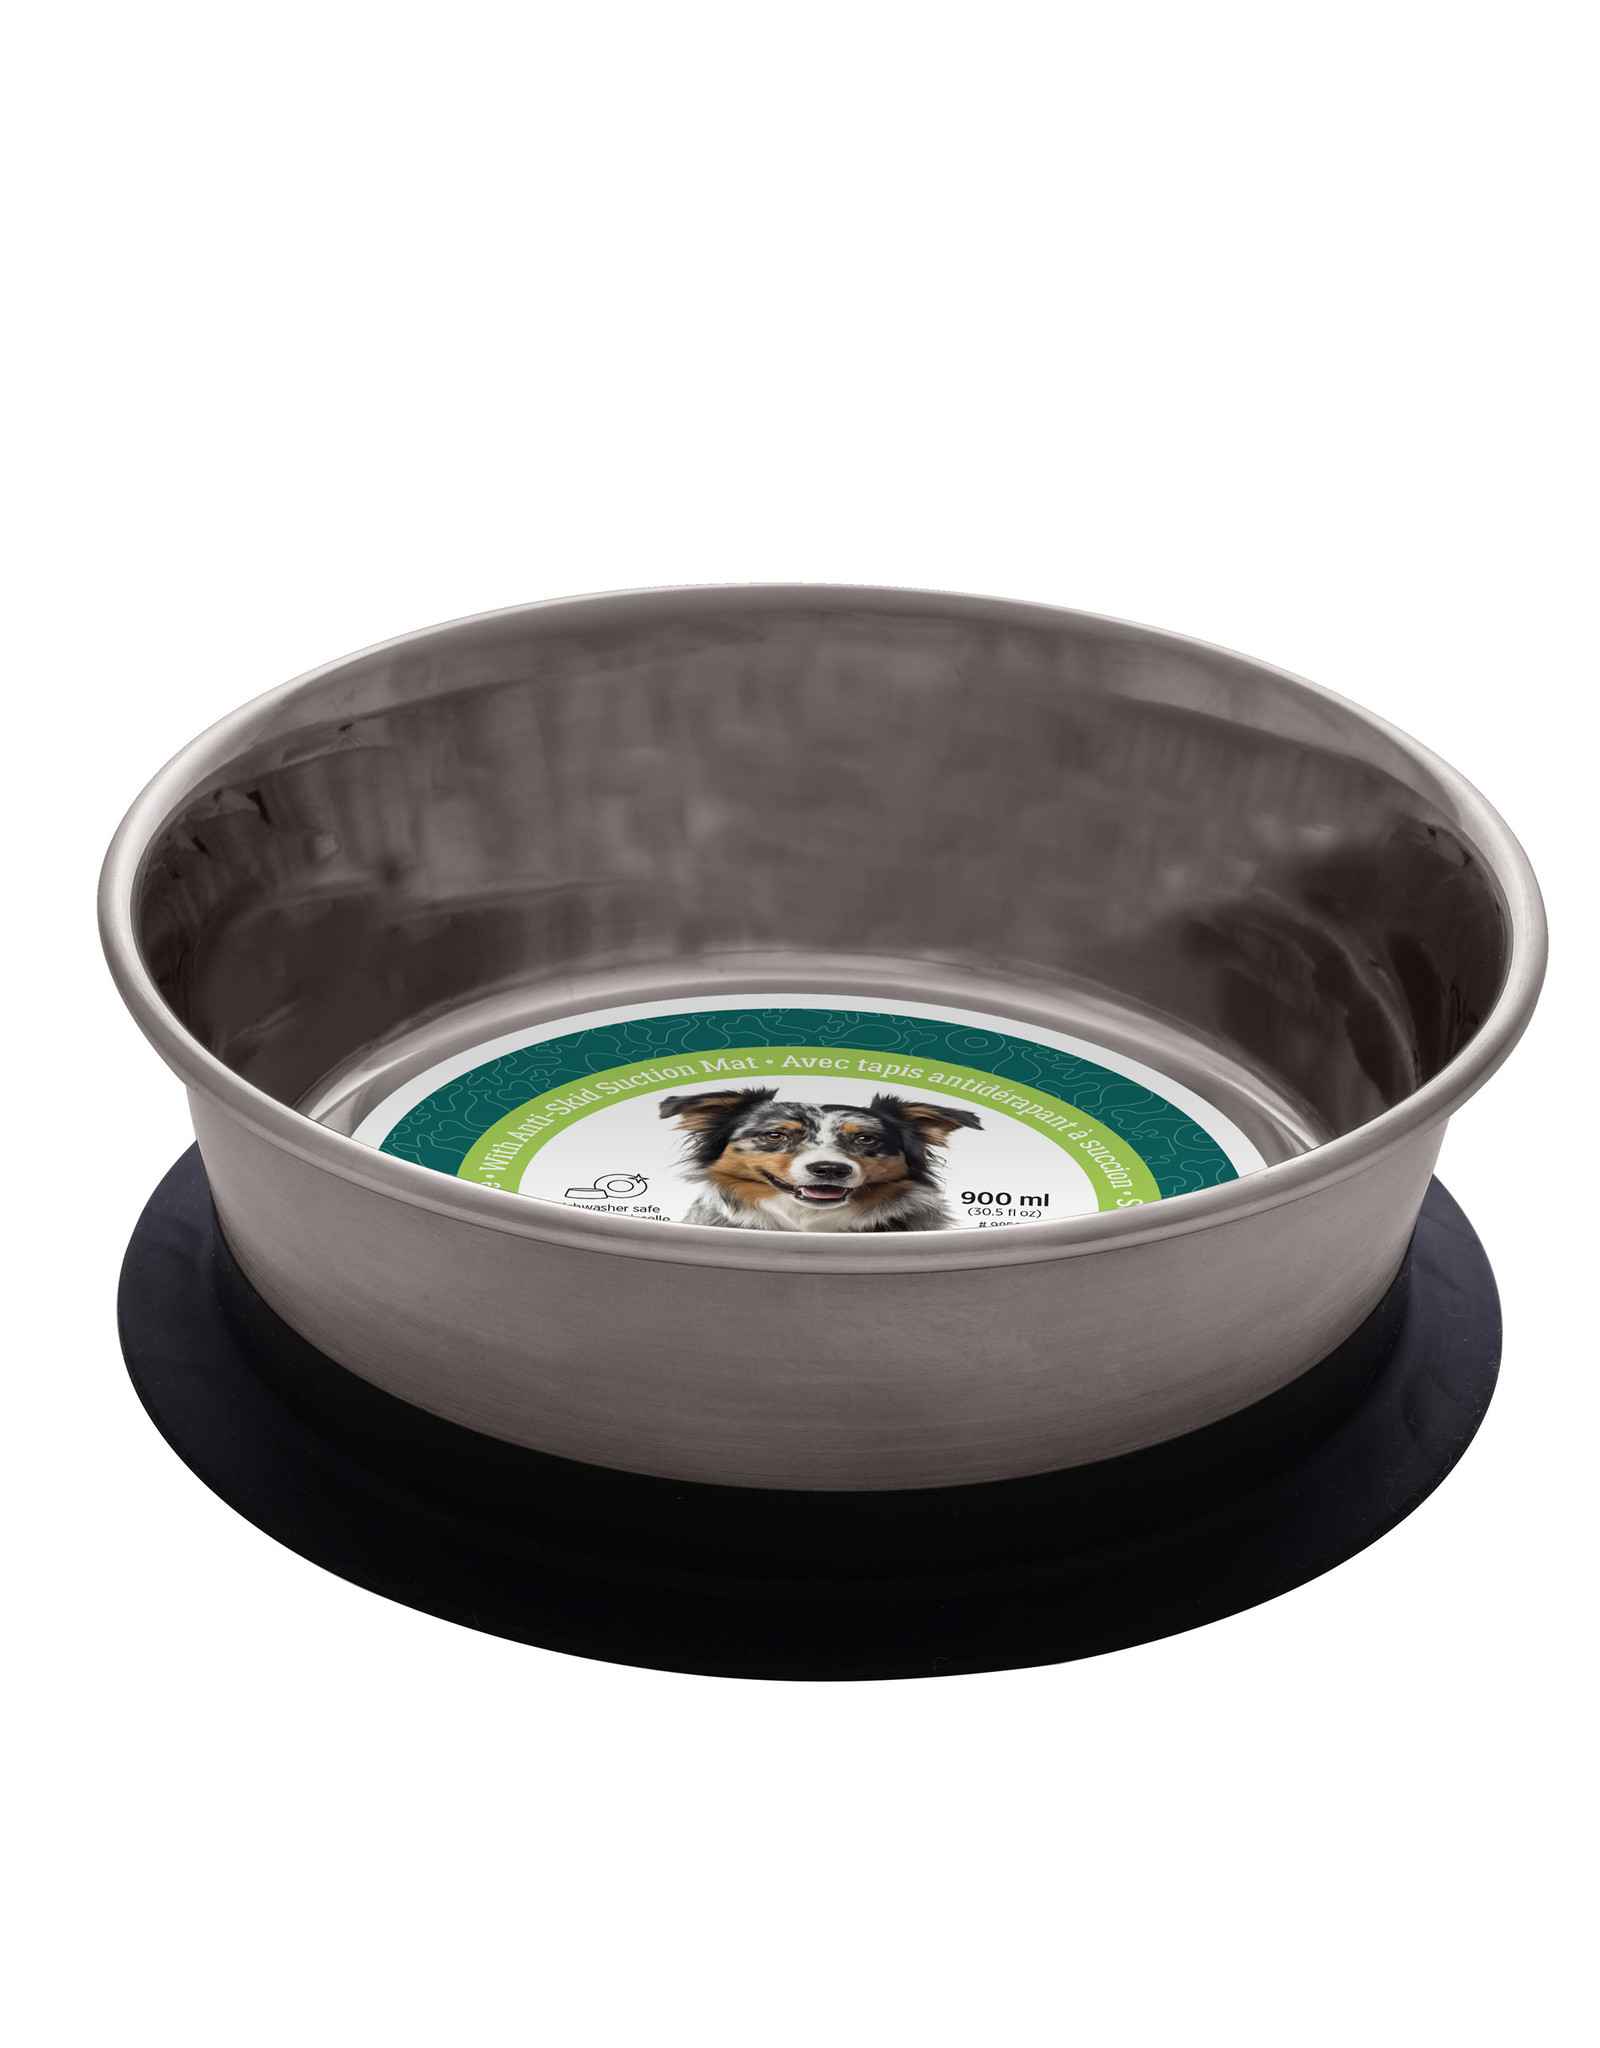 DO - Dogit Dogit Stainless Steel Non-Skid Stay-Grip Dog Bowl